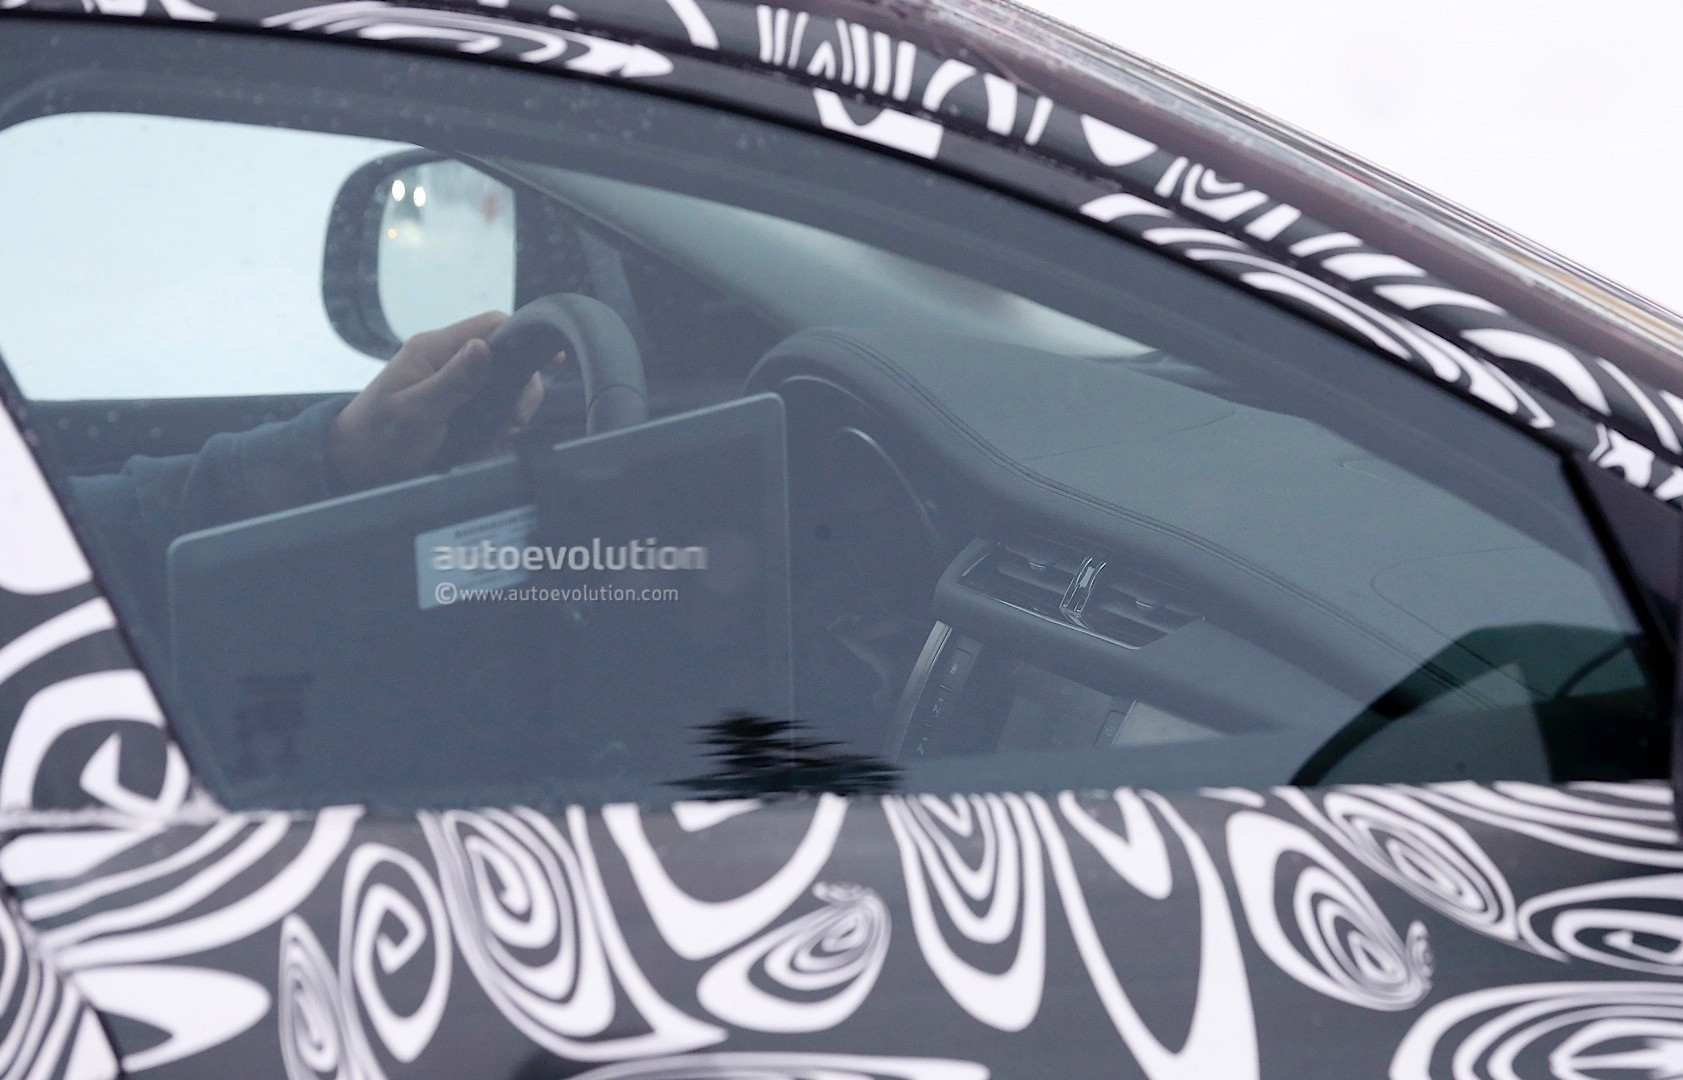 2016 - [Jaguar] XF II [X260] - Page 2 Next-jaguar-xf-spied-testing-in-the-snow-interior-sneak-peek-photo-gallery_10